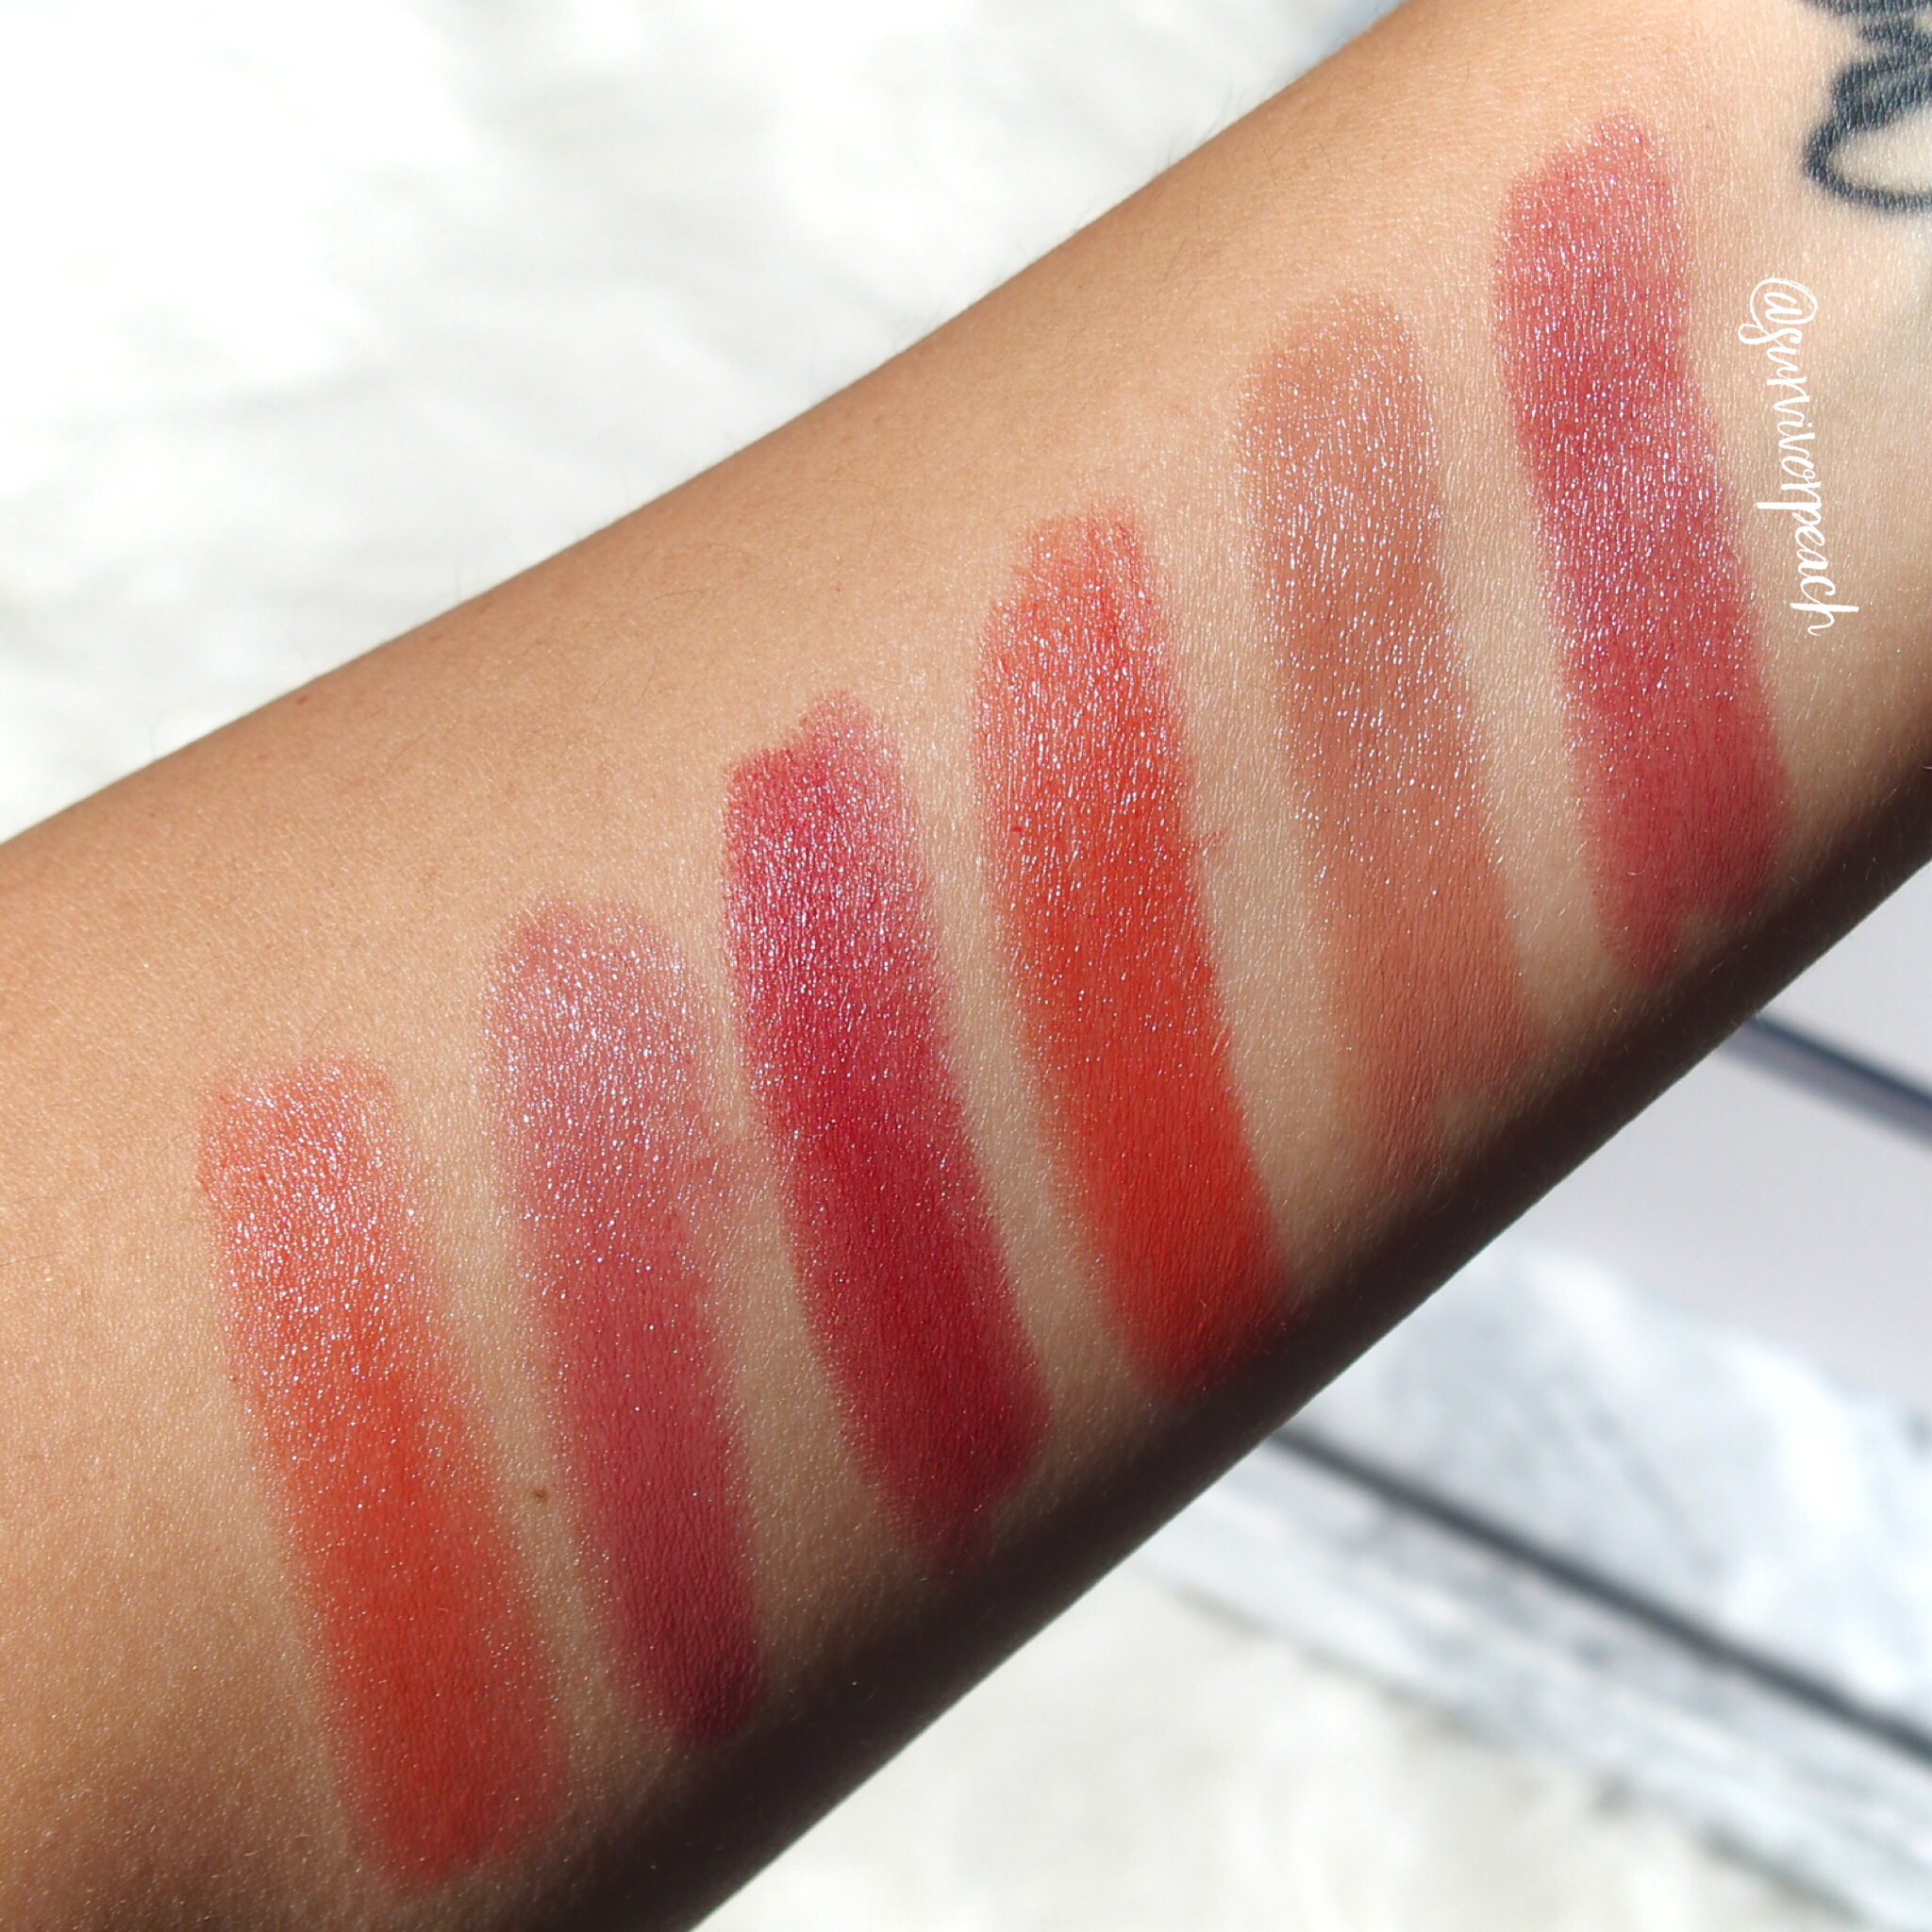 Swatches of the Tom Ford Lips and Girls in Ines, Fabiola, Gala, Naomi, Helena, Clutch-Size Lip Balm in Neotropic